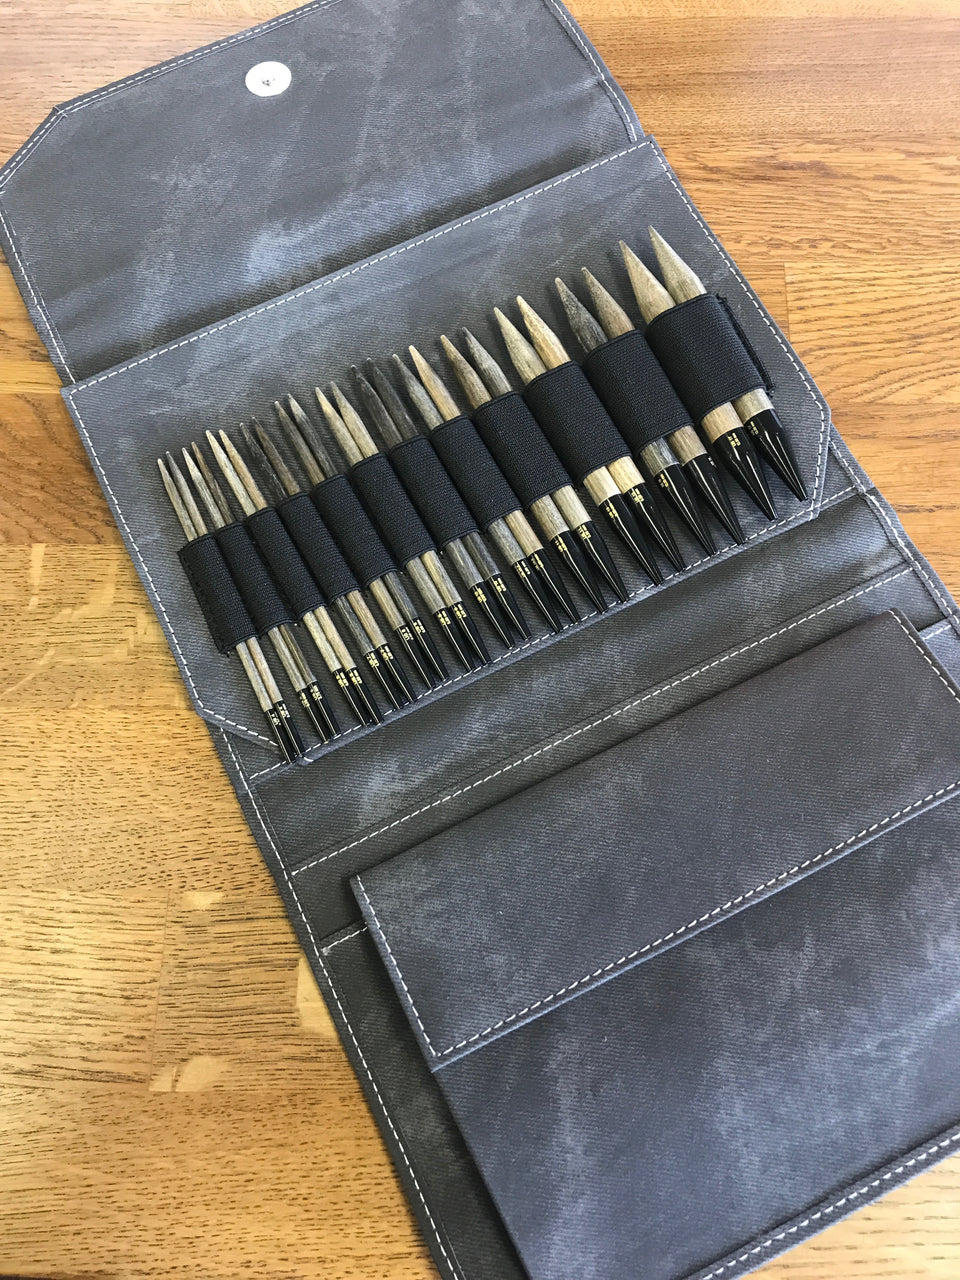 Lykke Regular needle set